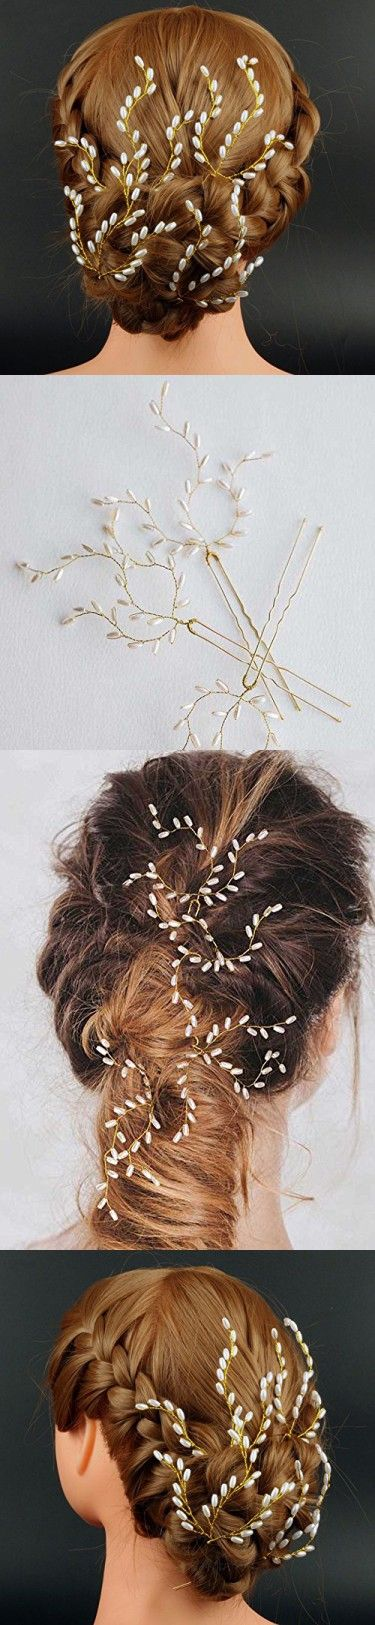 Handmade Bridal Pearl Hair Pins for Wedding Hair Accessories for Bridesmaids Jewelry and Flower Girls(pack of 4)